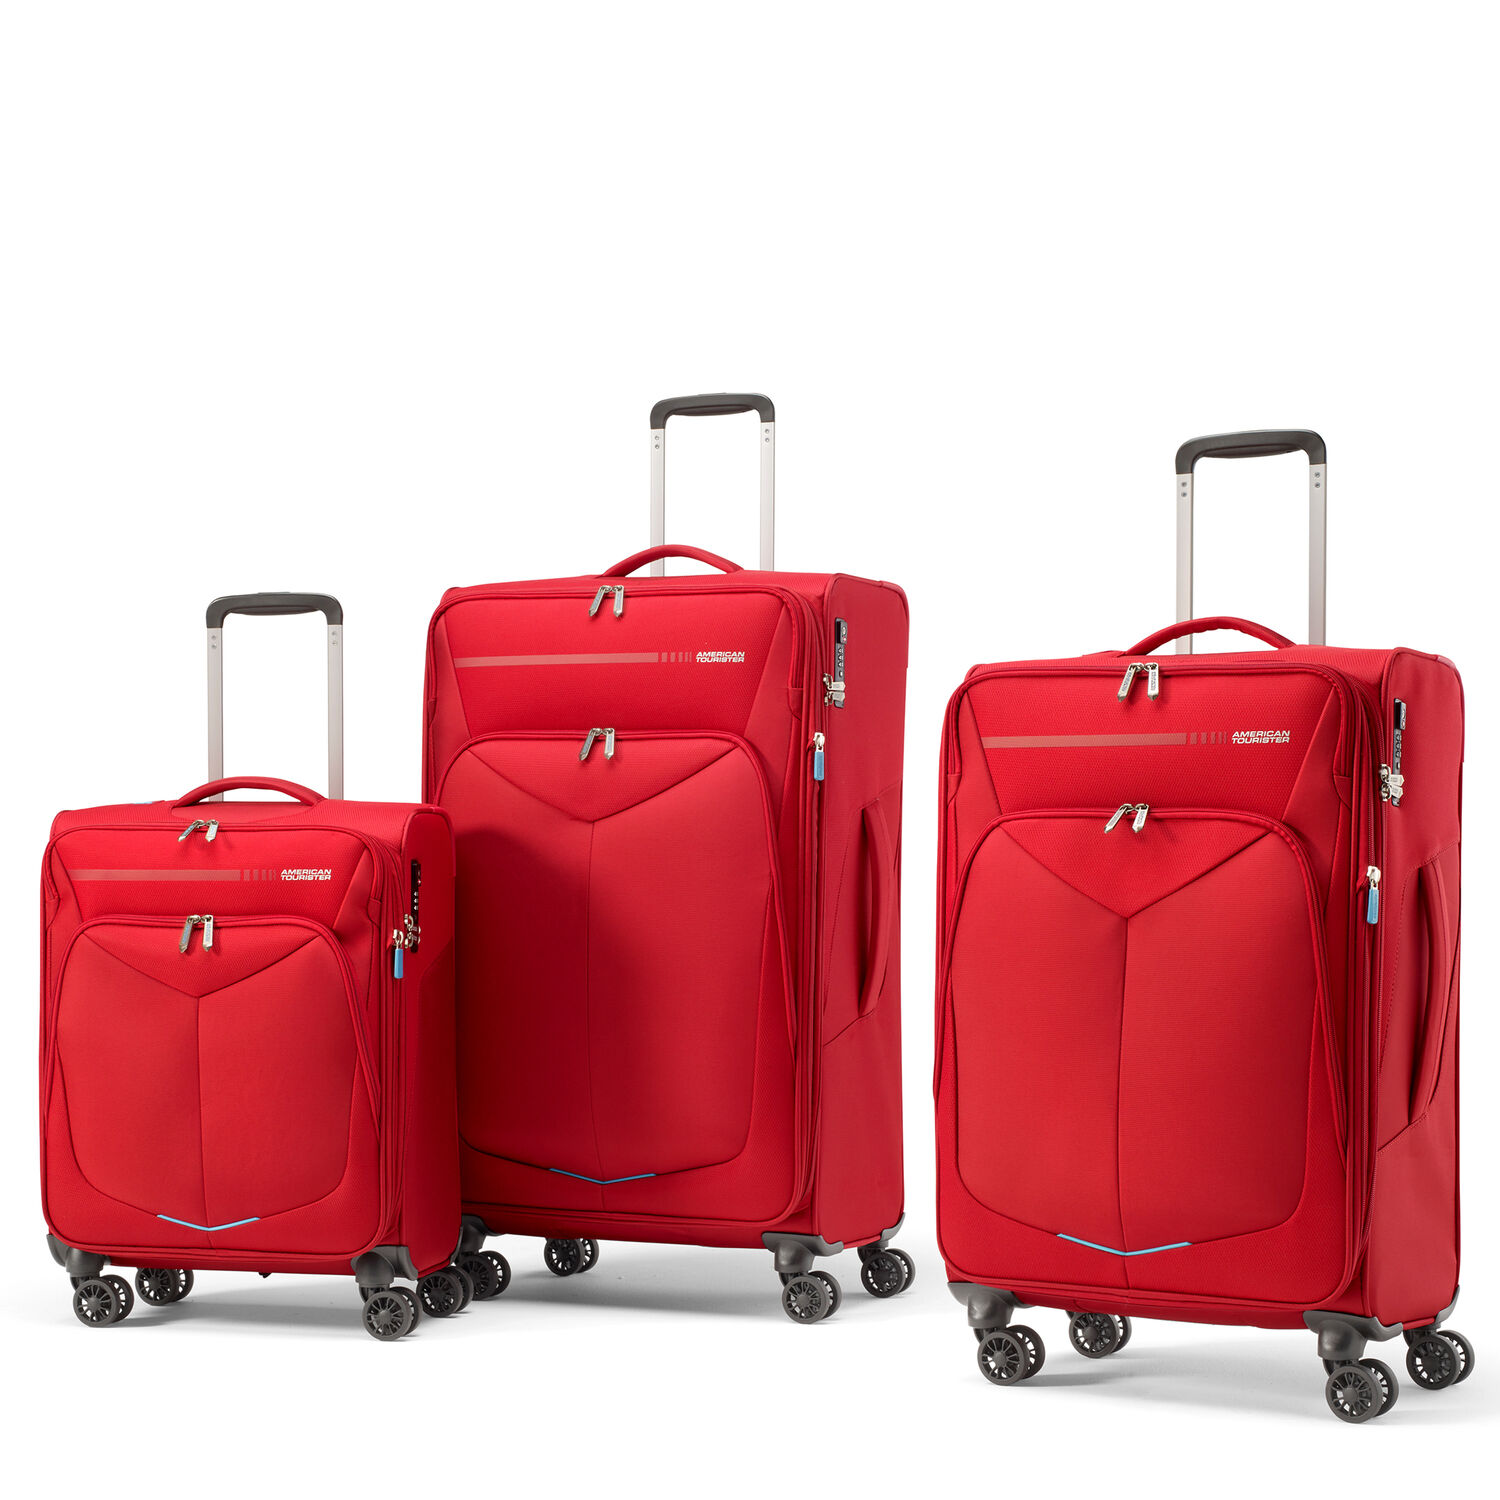 American Tourister Fly Light Spinner 3 Piece Set (CO/Med/Lrg) in the color Red.